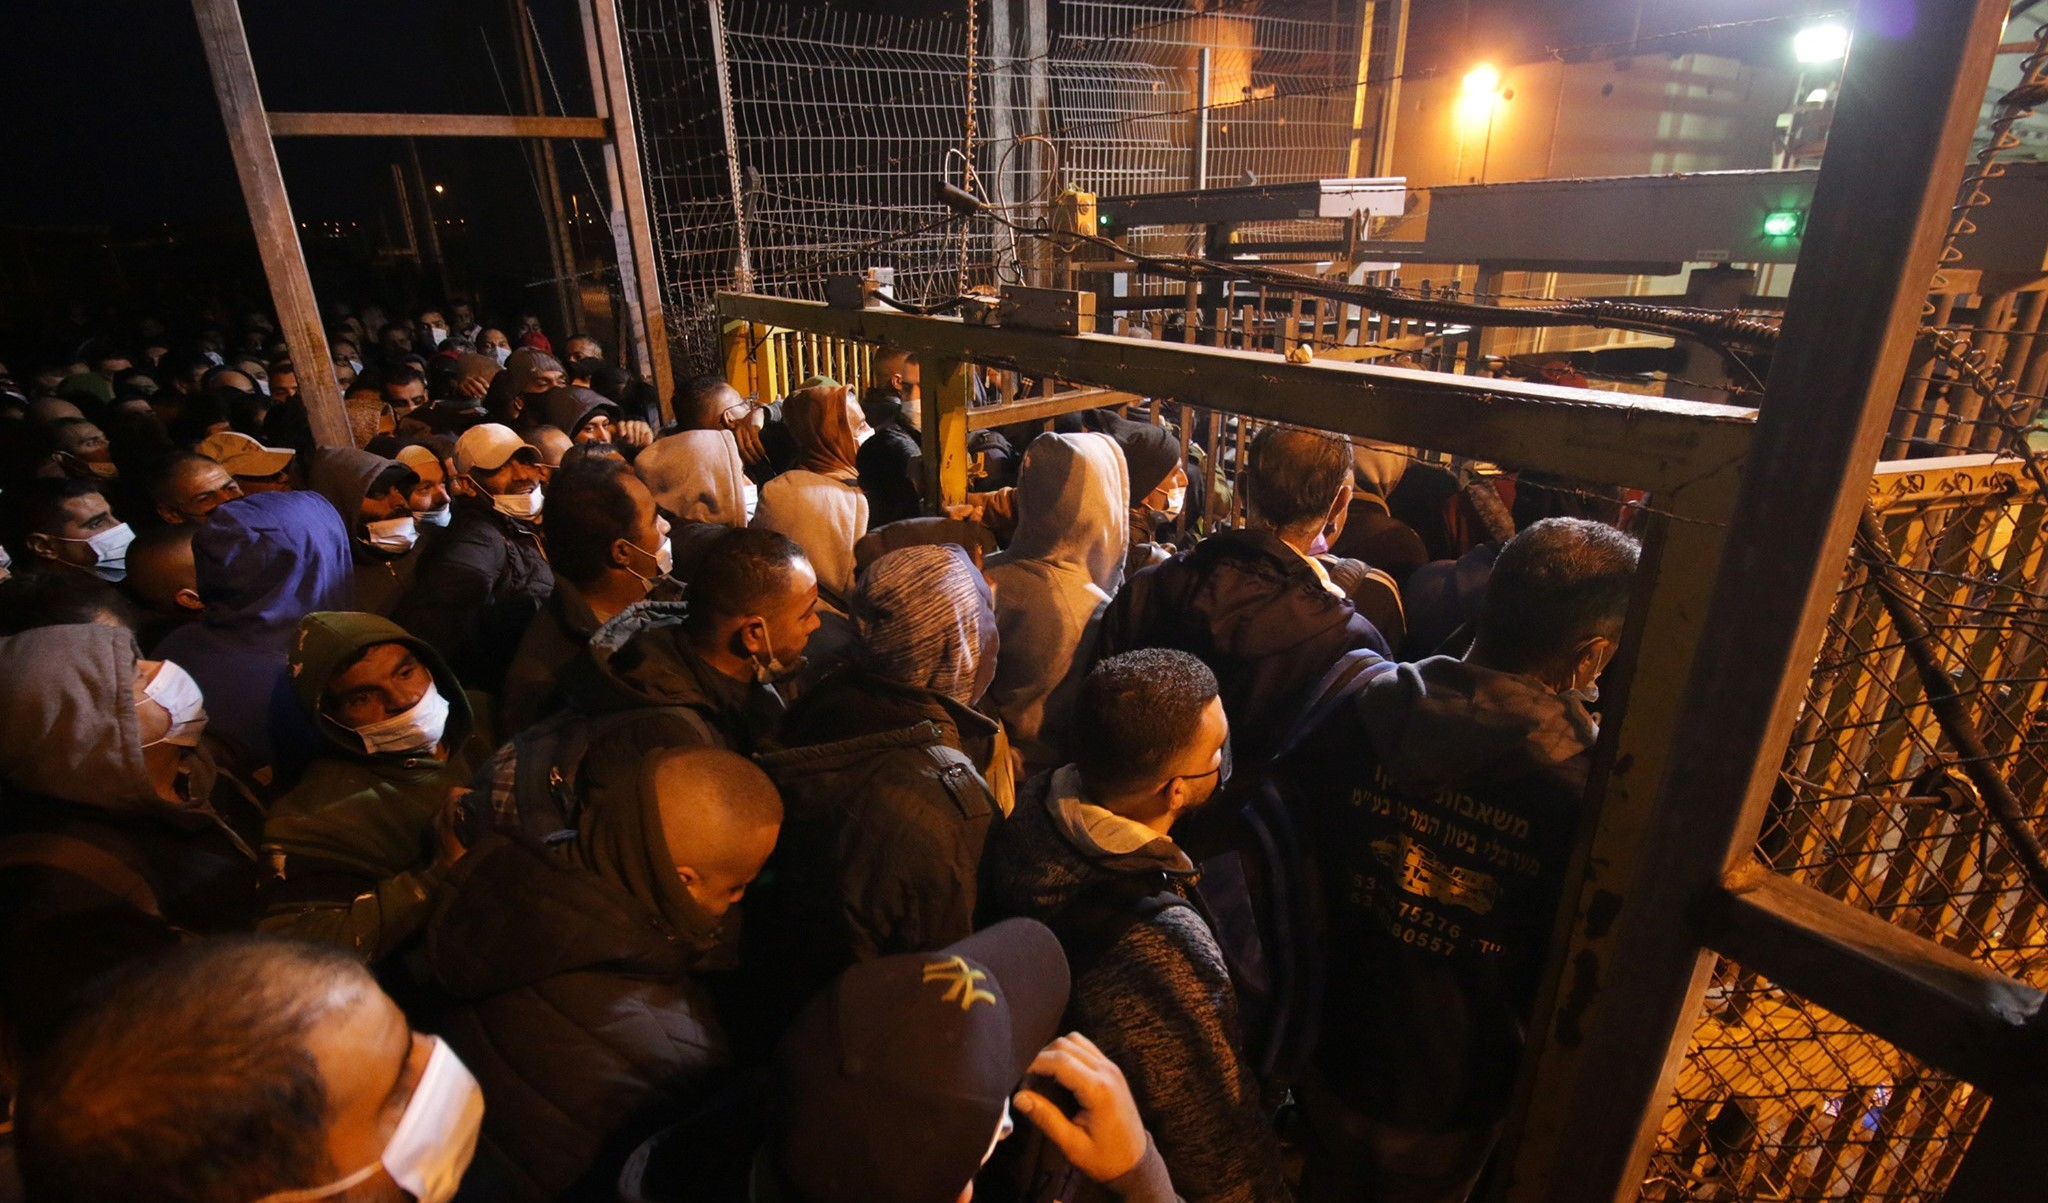 Thousands of Palestinian workers cross in the early morning hours every day through the Eyal checkpoint, near Qalqilya in the occupied territories, to reach their workplaces in Israel.